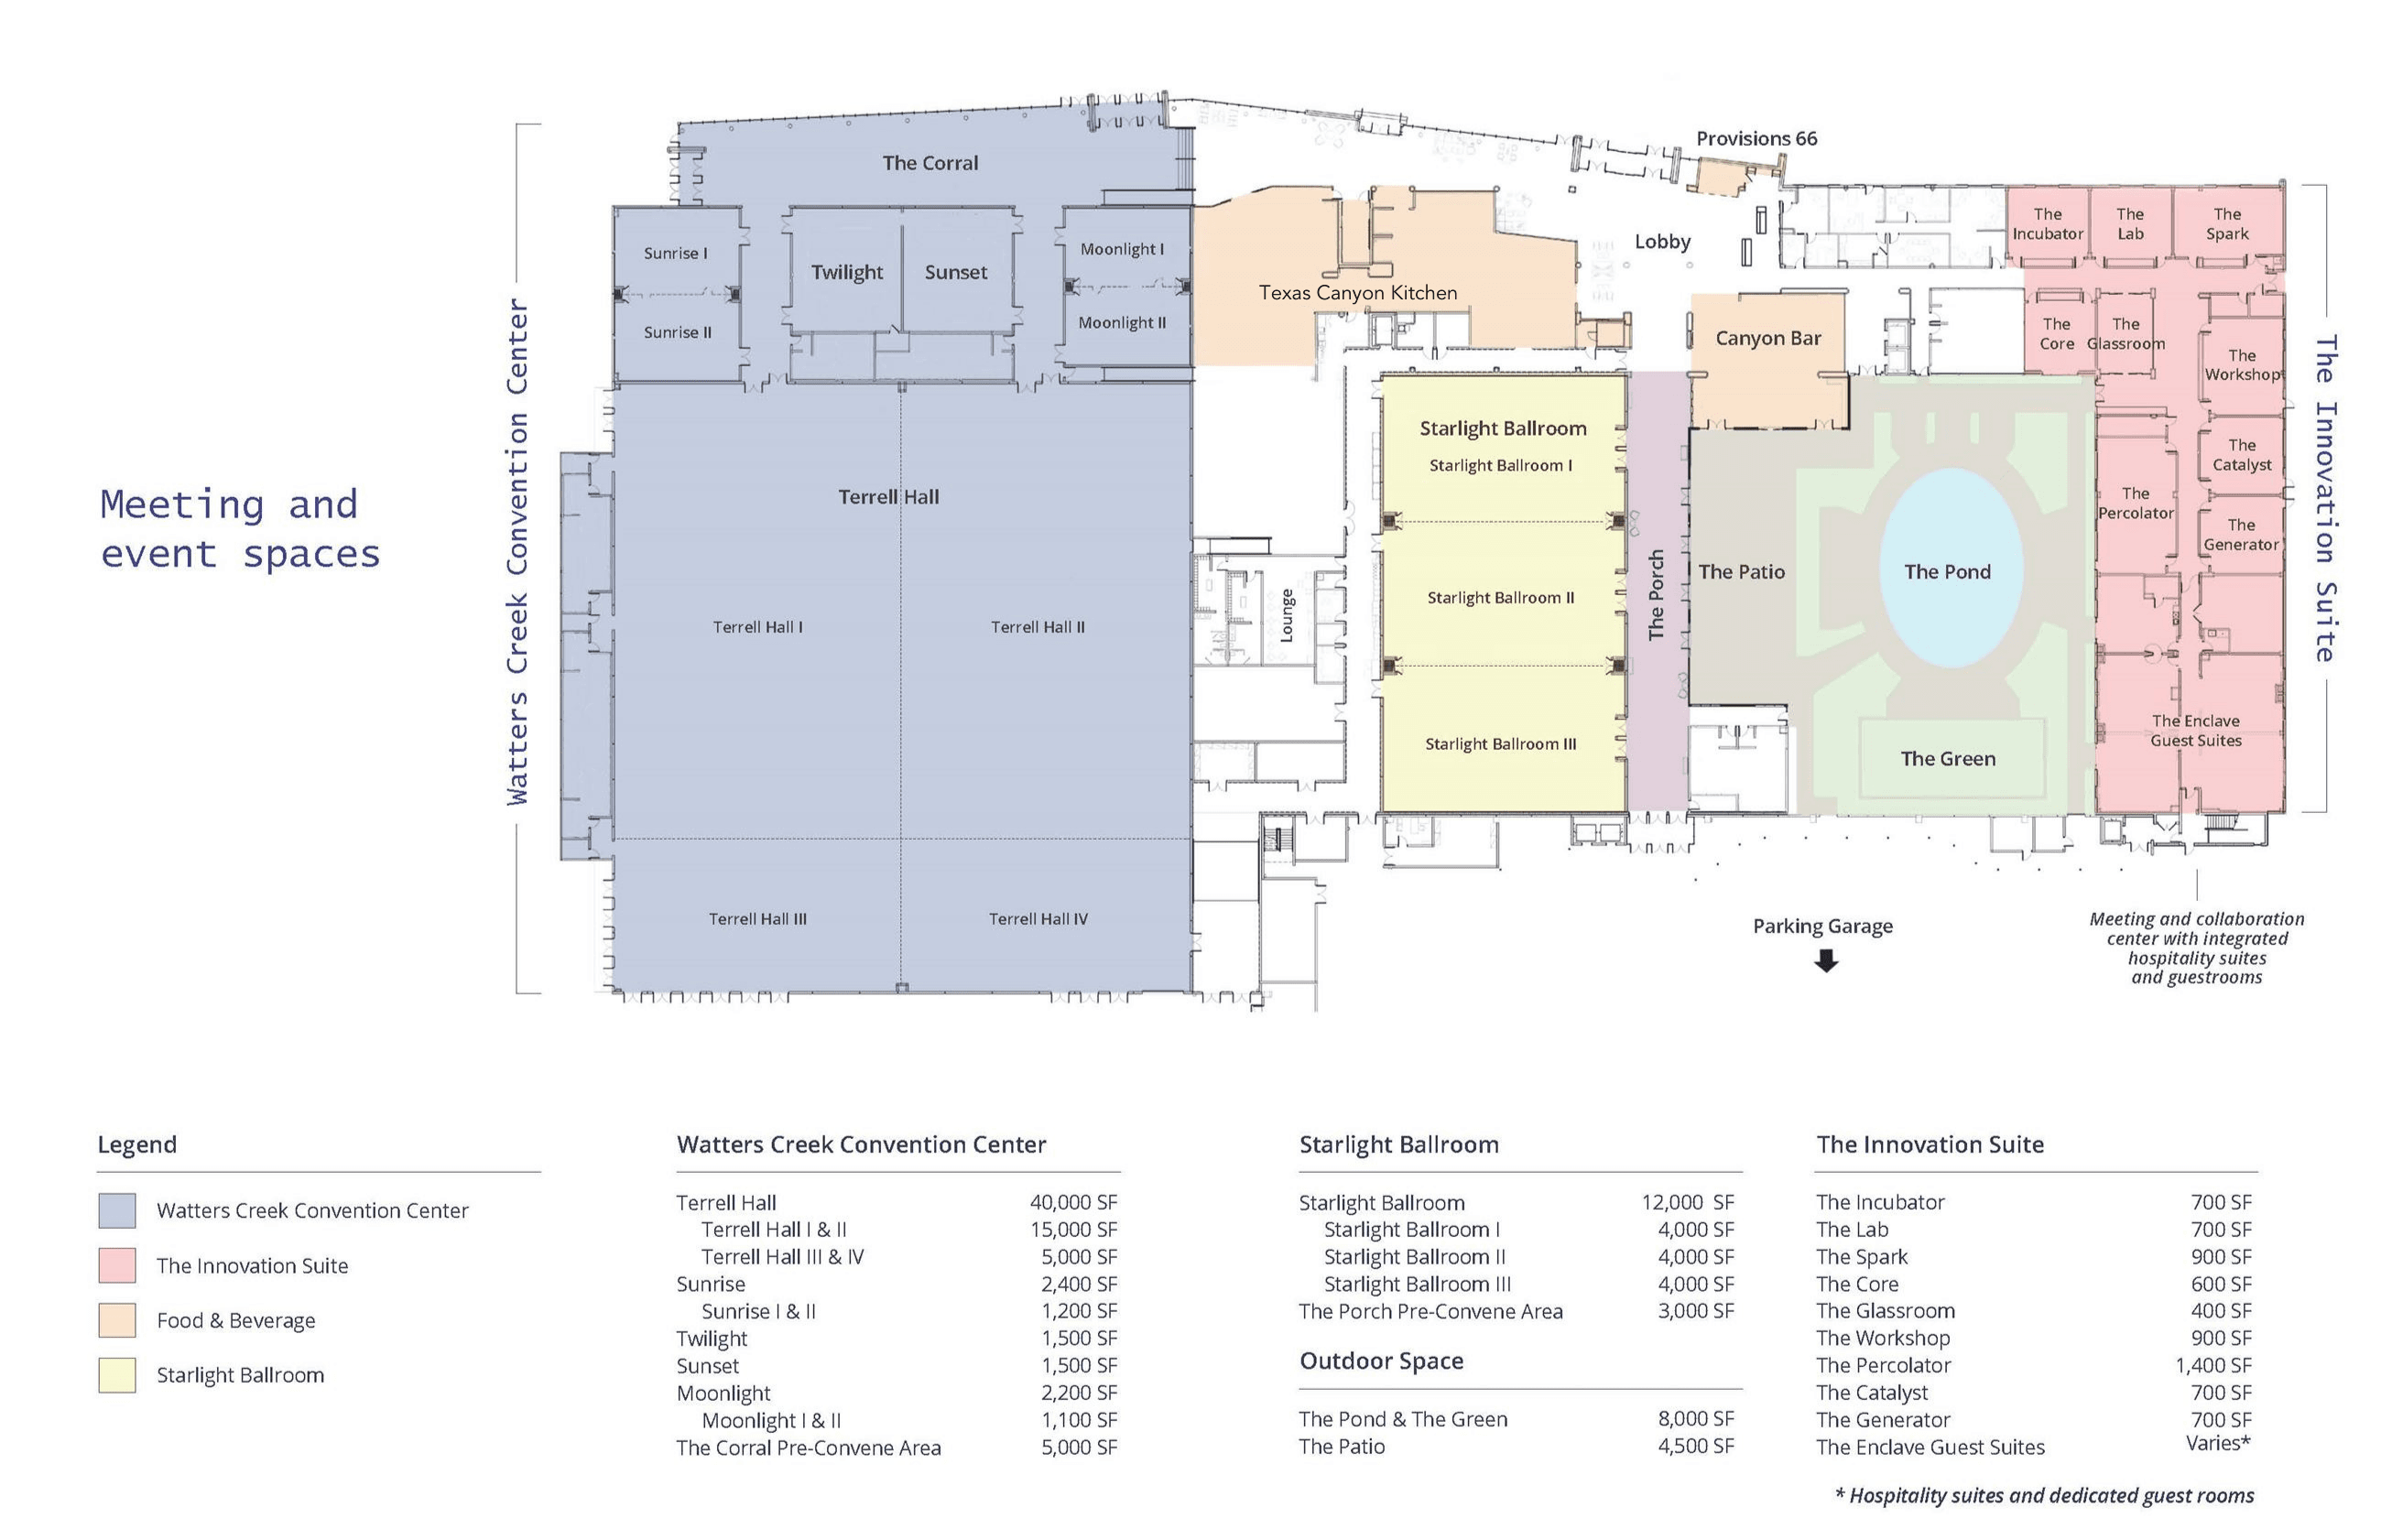 Watters Creek Convention Center Meeting Spaces Floorplan - 2021